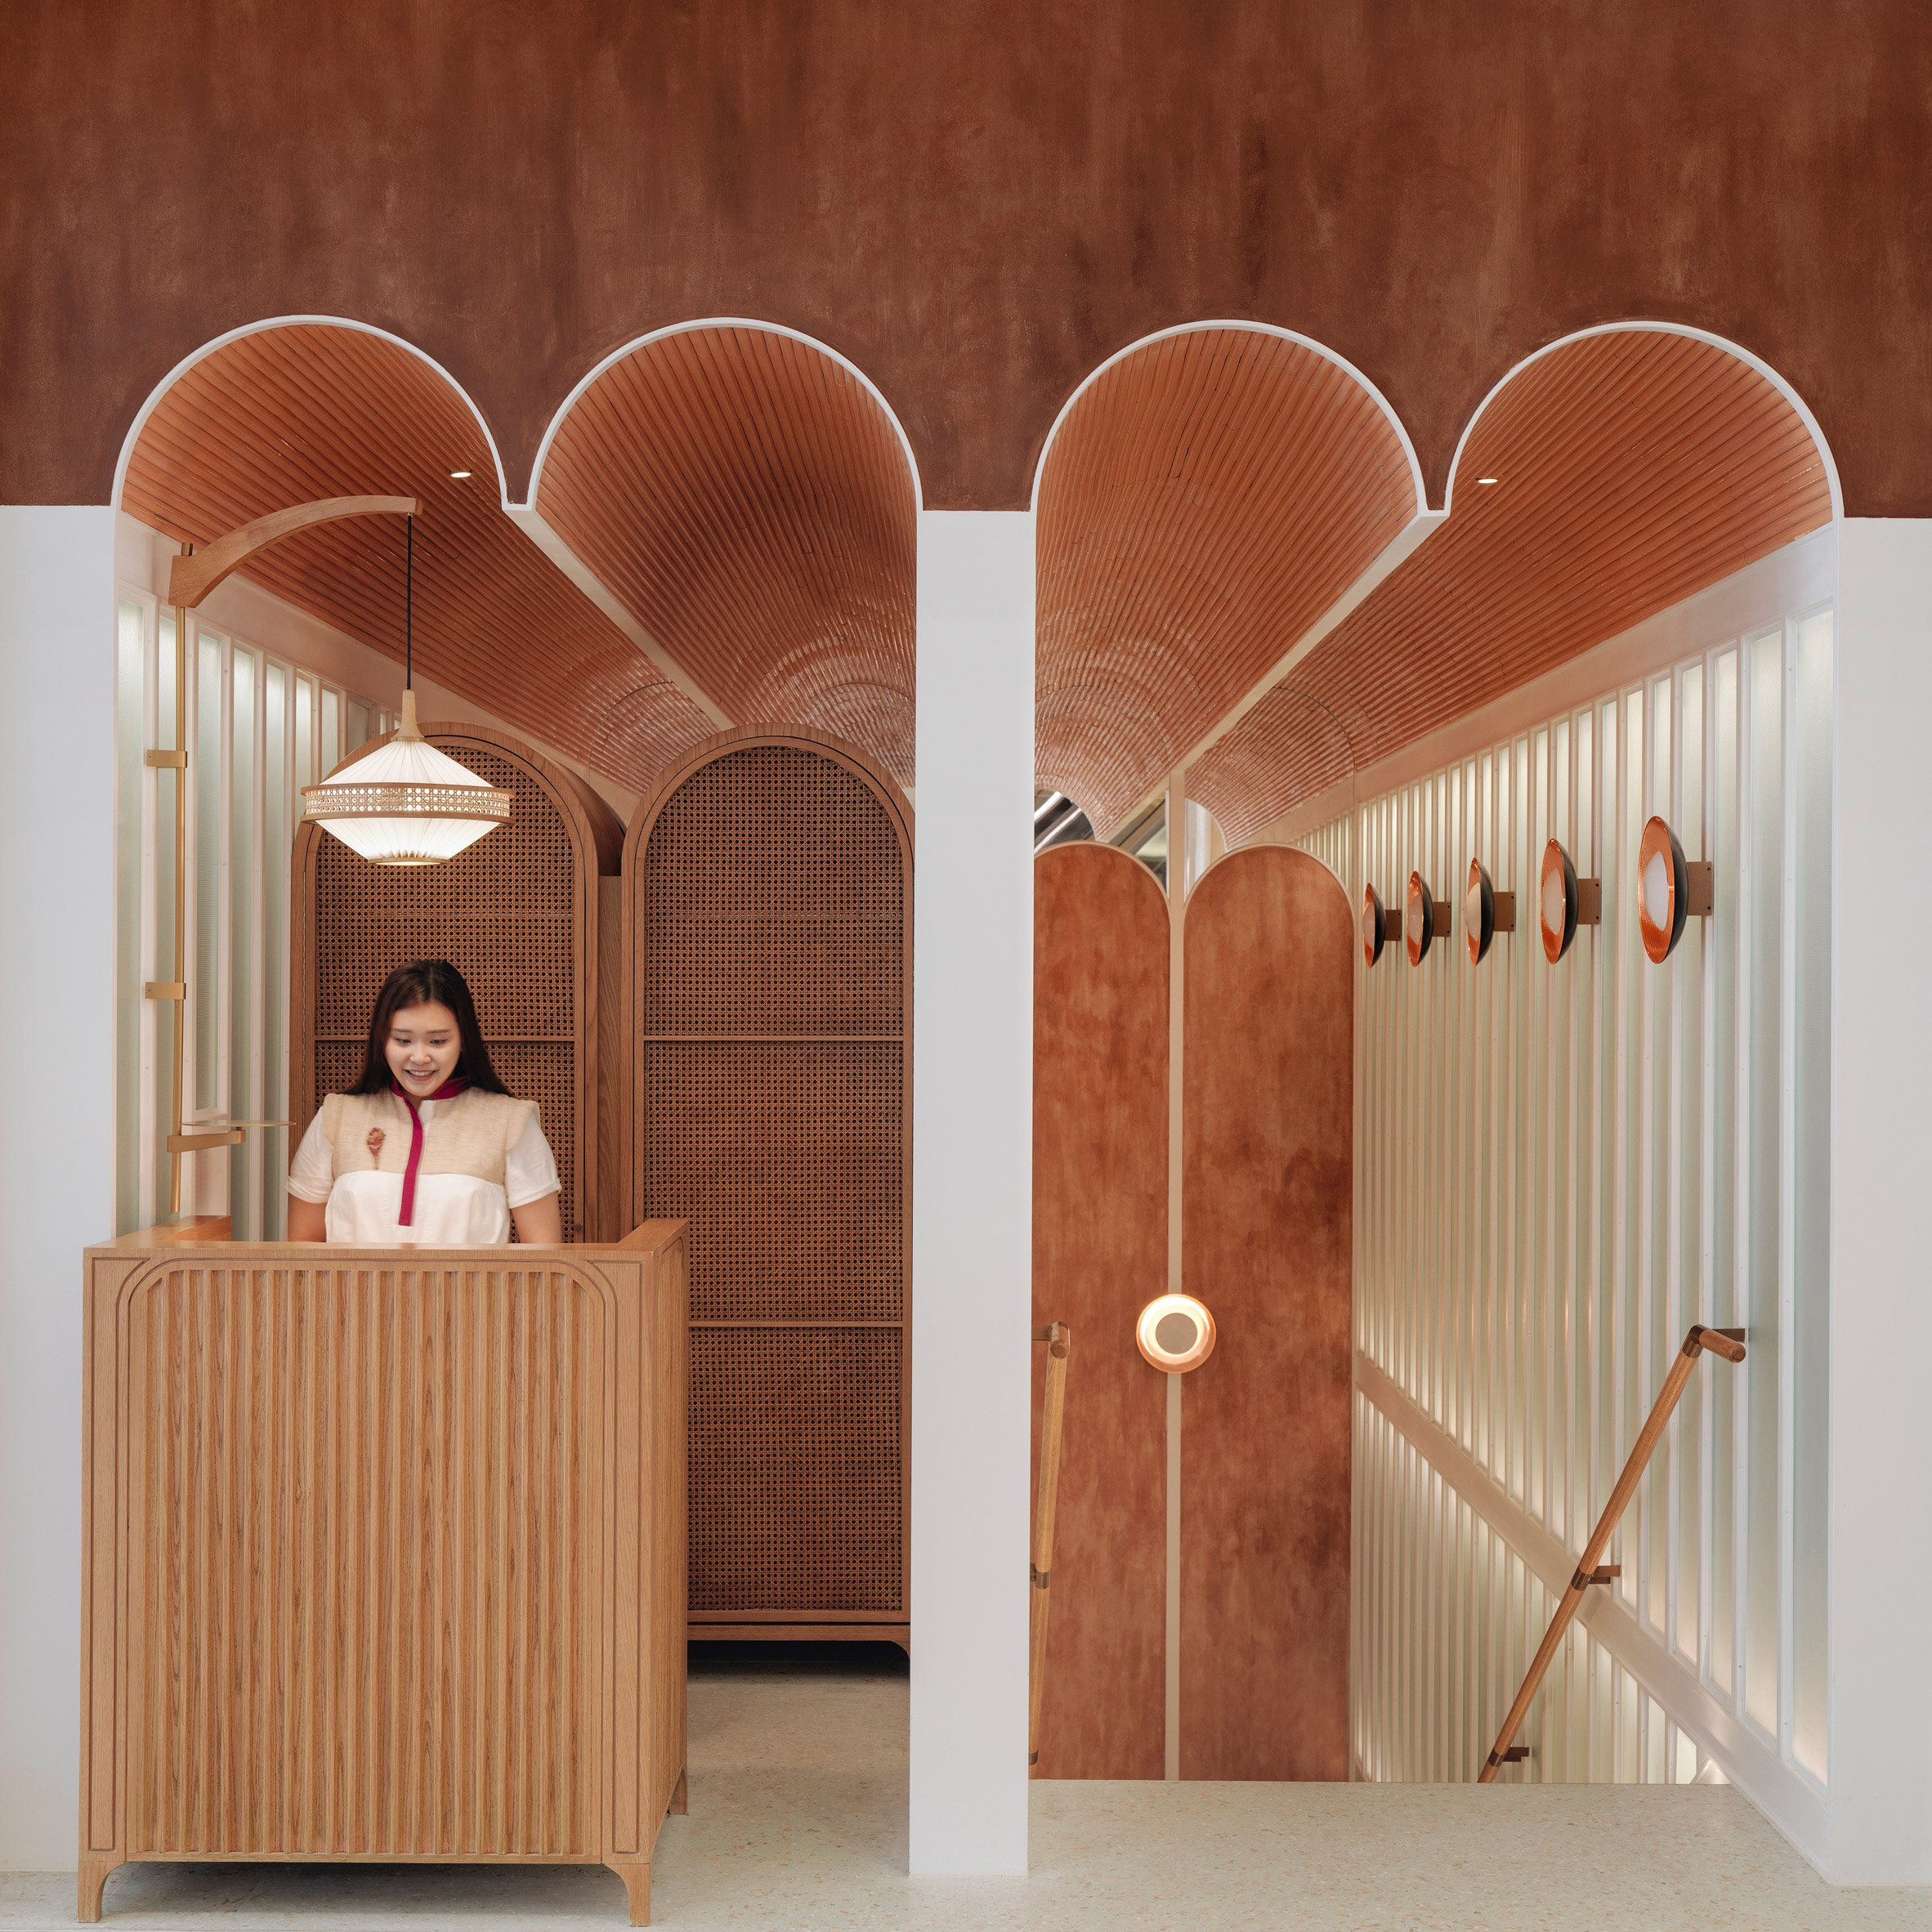 Chinese New Year: Dim sum restaurant by Linehouse Studio fuses east and west